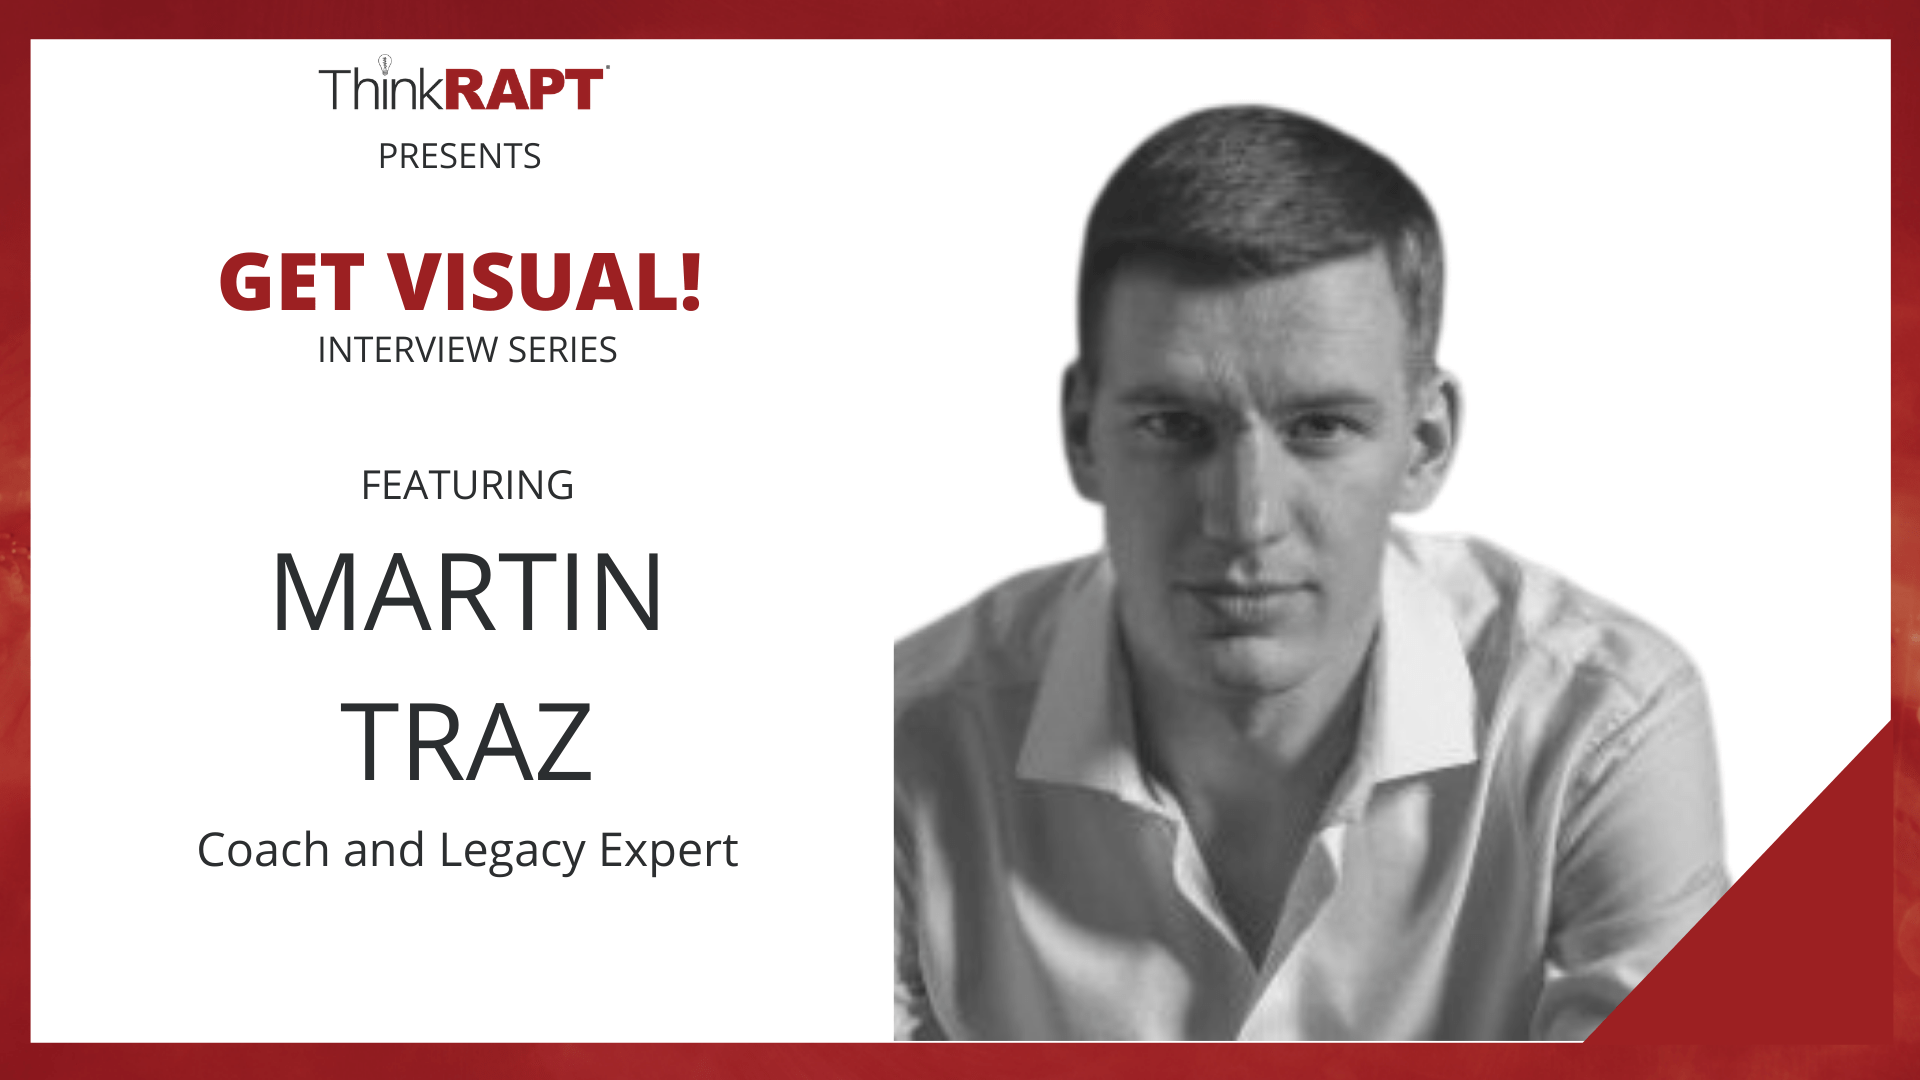 A man wearing a white polo shirt and seriously looking at the camera. Text says Think RAPT presents Get Visual Interview Series Featuring Martin Traz